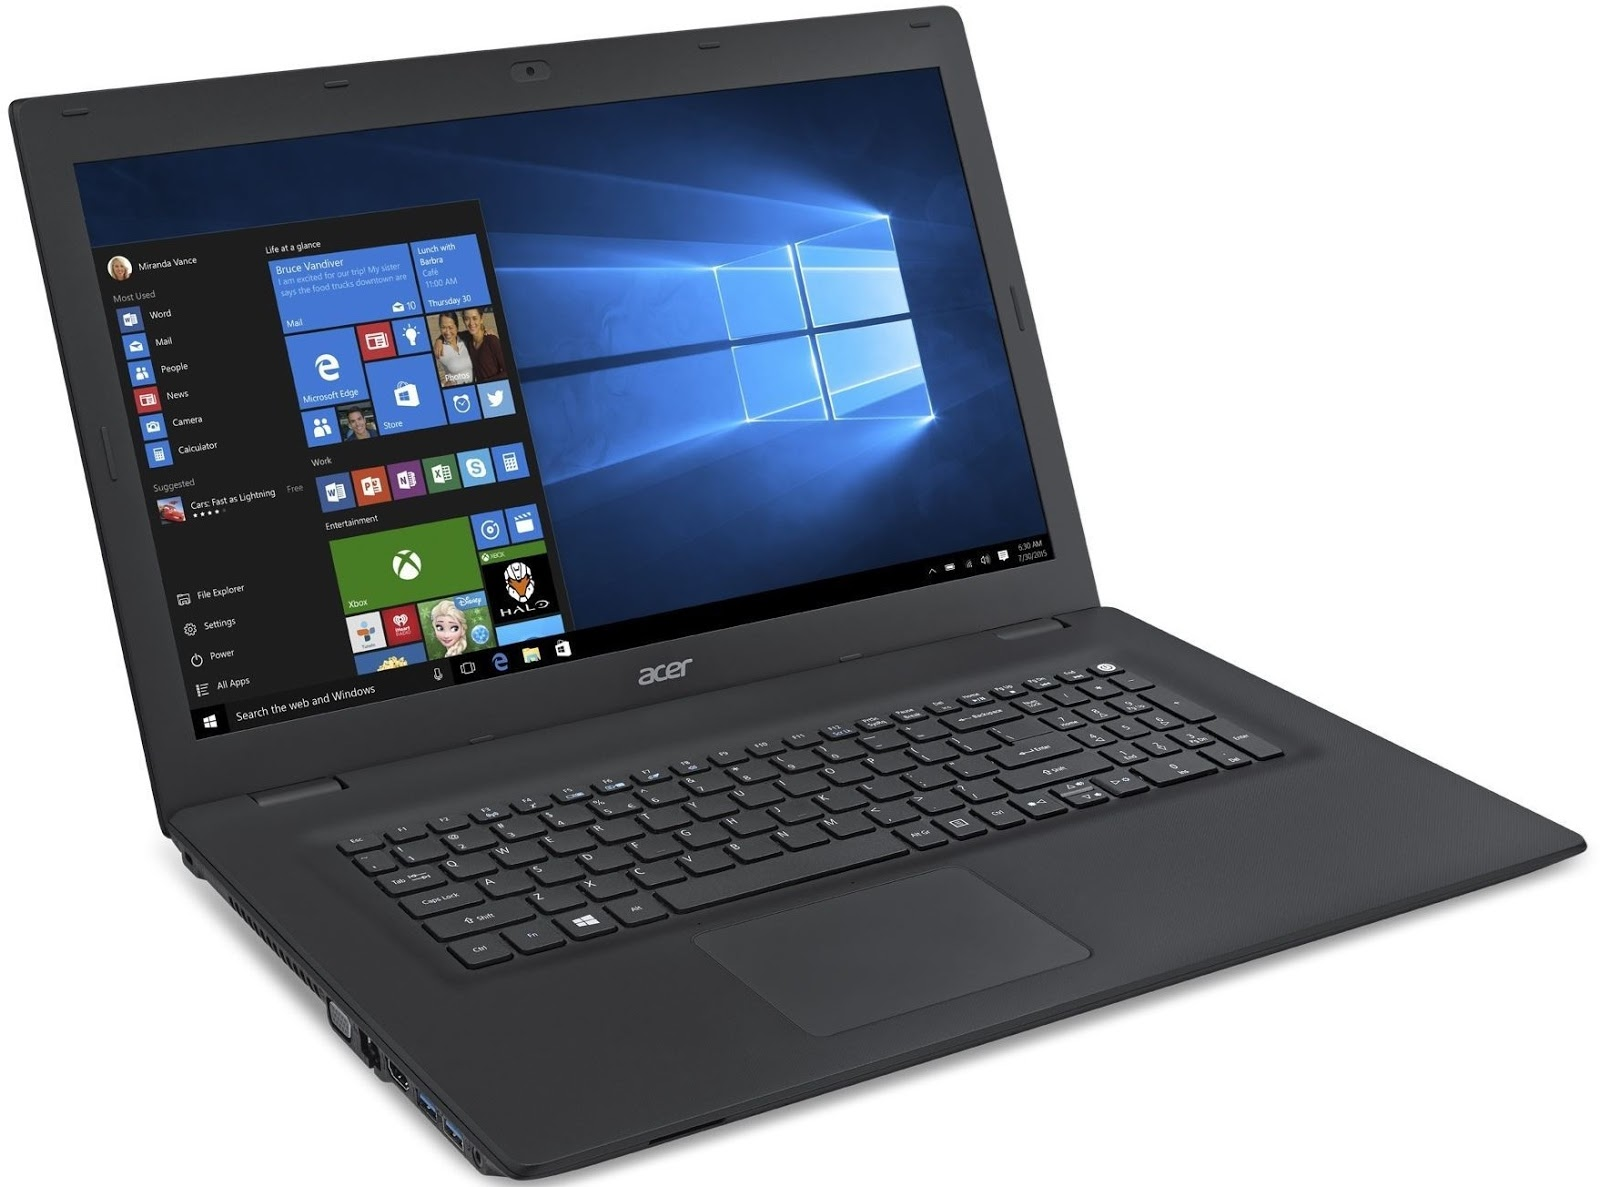 Download Drivers: Acer TravelMate P653-MG Intel AMT